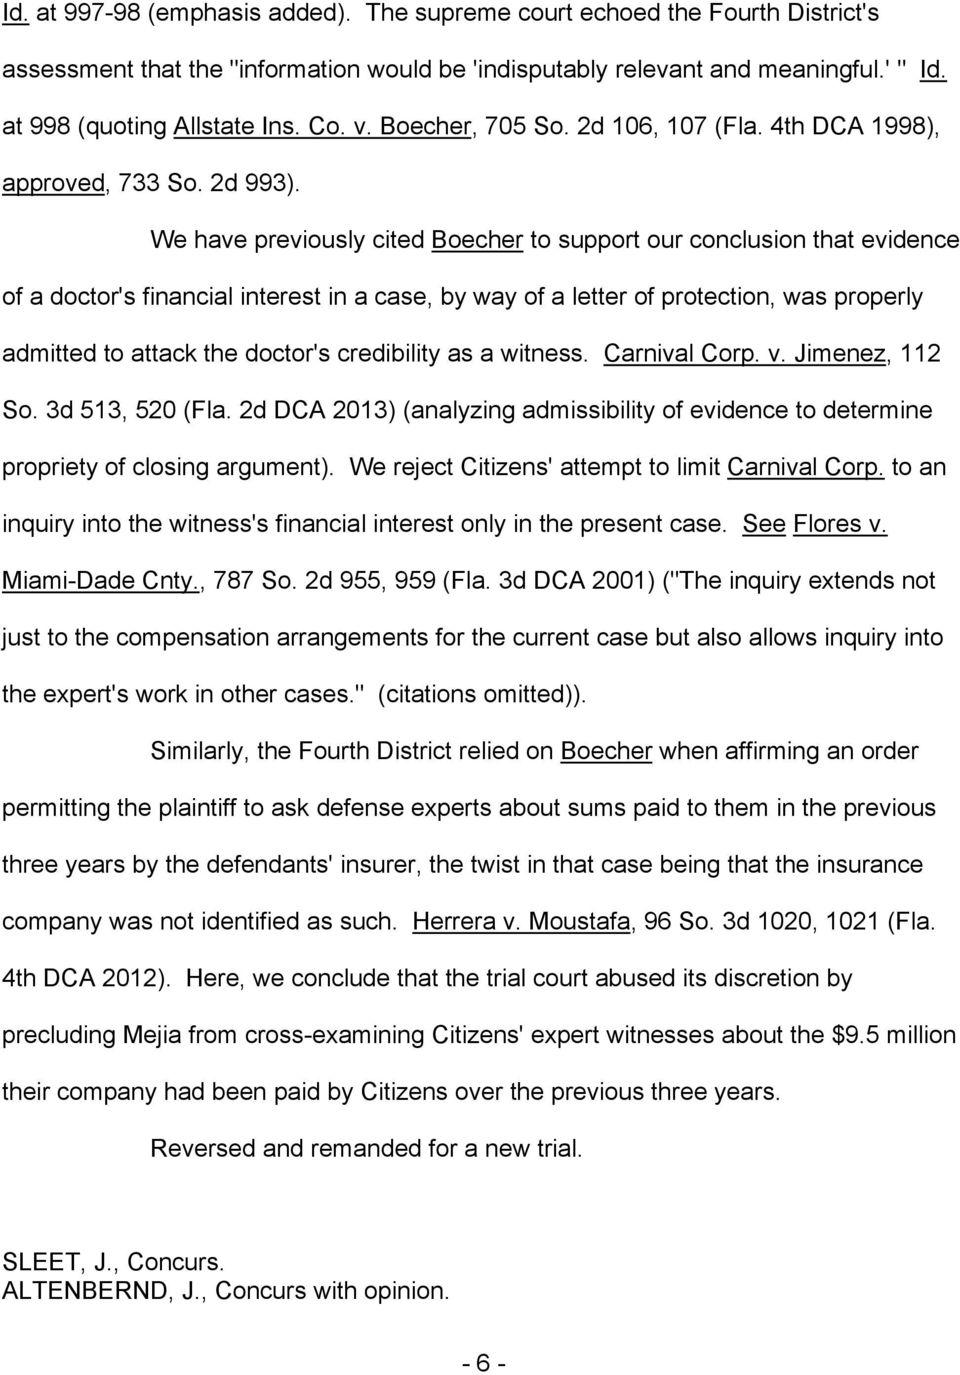 We have previously cited Boecher to support our conclusion that evidence of a doctor's financial interest in a case, by way of a letter of protection, was properly admitted to attack the doctor's